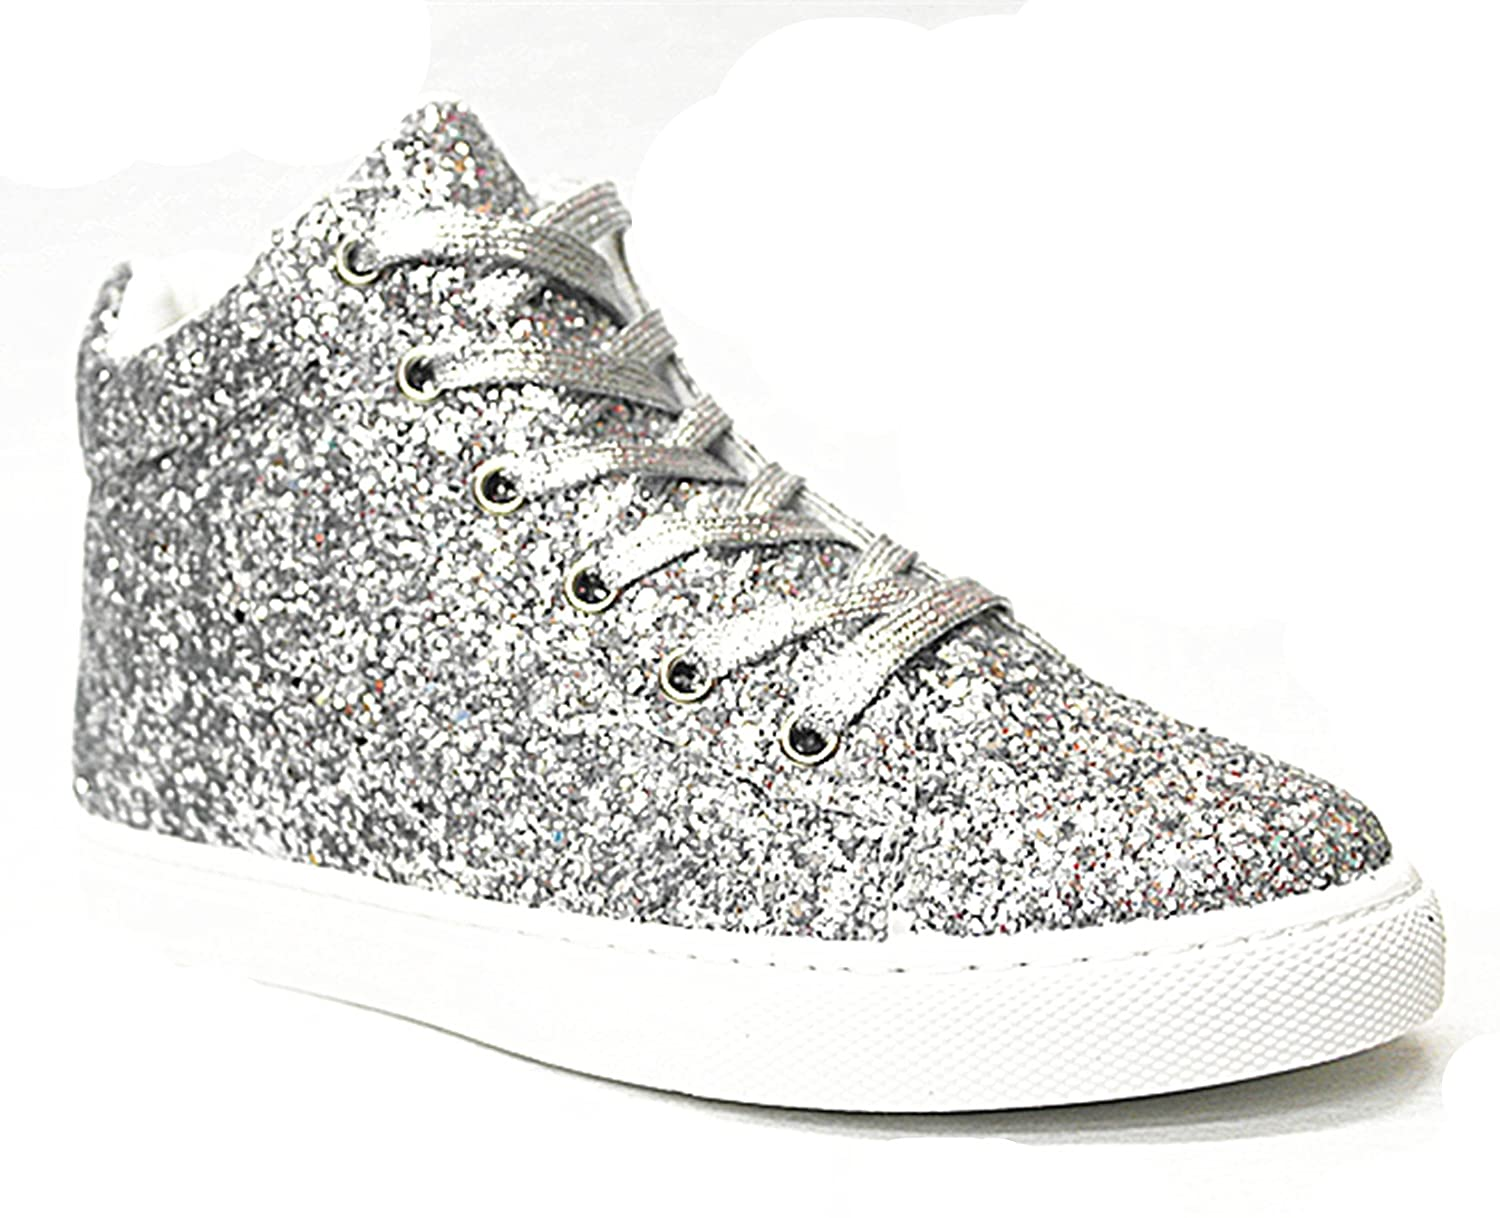 SF Forever Link Remy-18 Women's Jogger Sneaker-Lightweight Glitter Quilted Lace up Shoes New B07BJC5ZNN 7.5 B(M) US|Silver-27